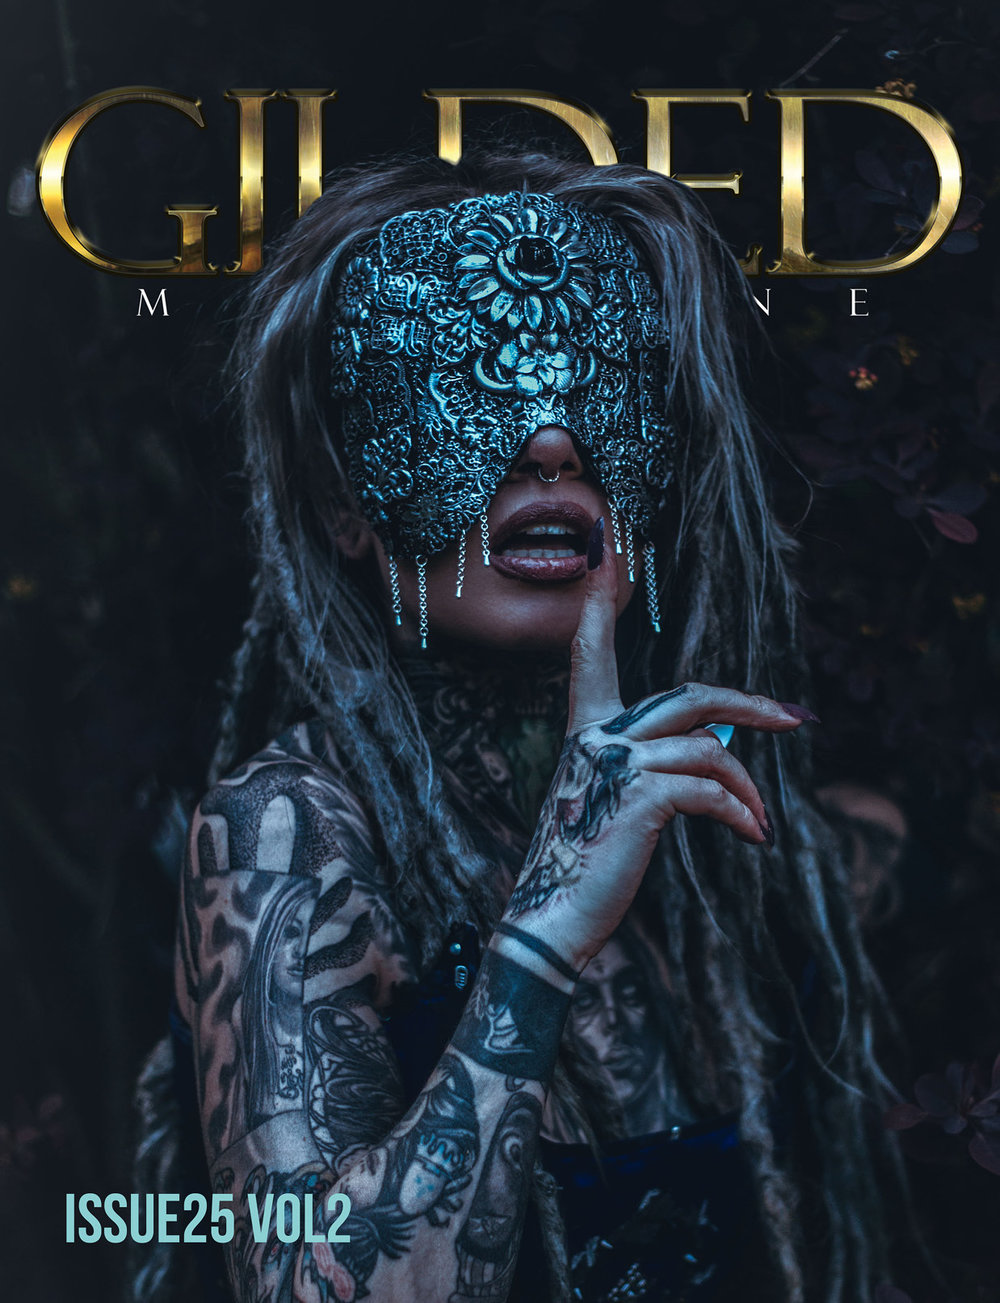 Gilded-Issue025Vol2-0.jpg